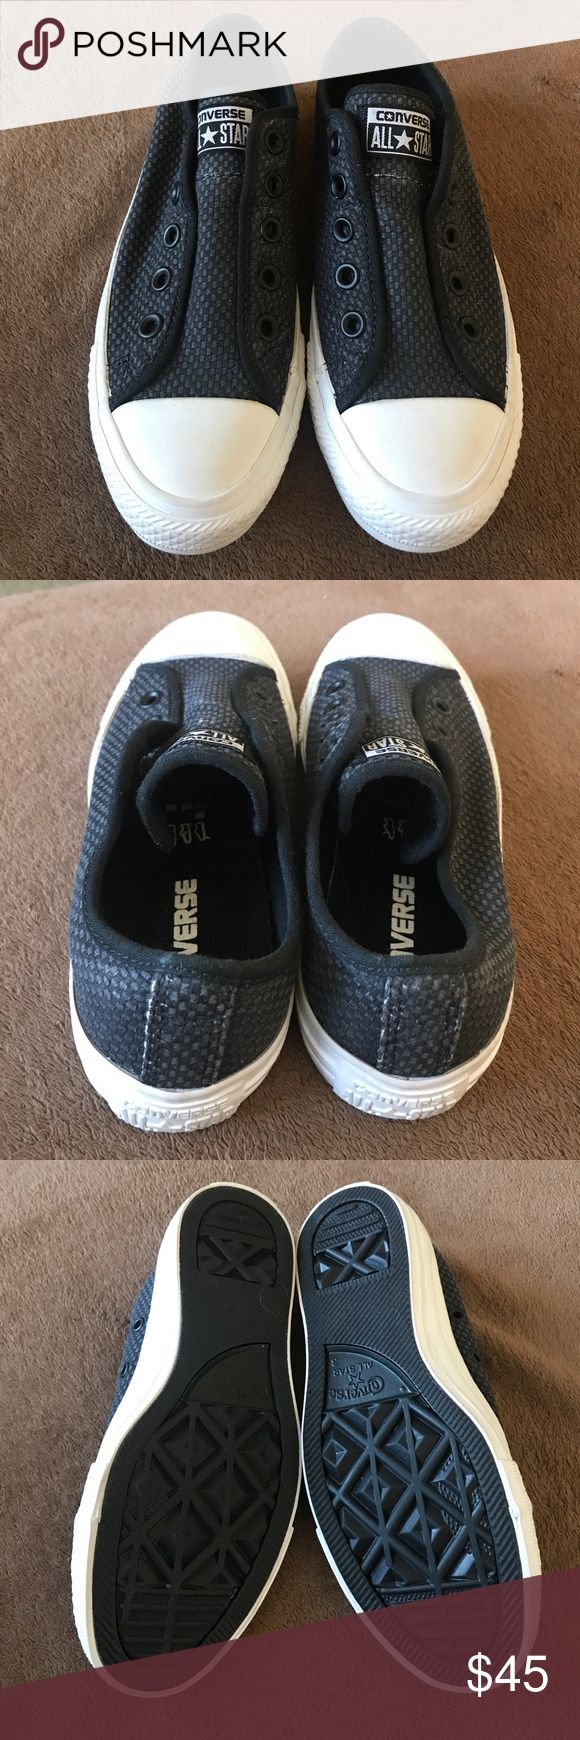 NWOT Converse slip ons 😎 woven Converse slip ons—no laces needed!  No box—price firm. Converse Shoes Sneakers